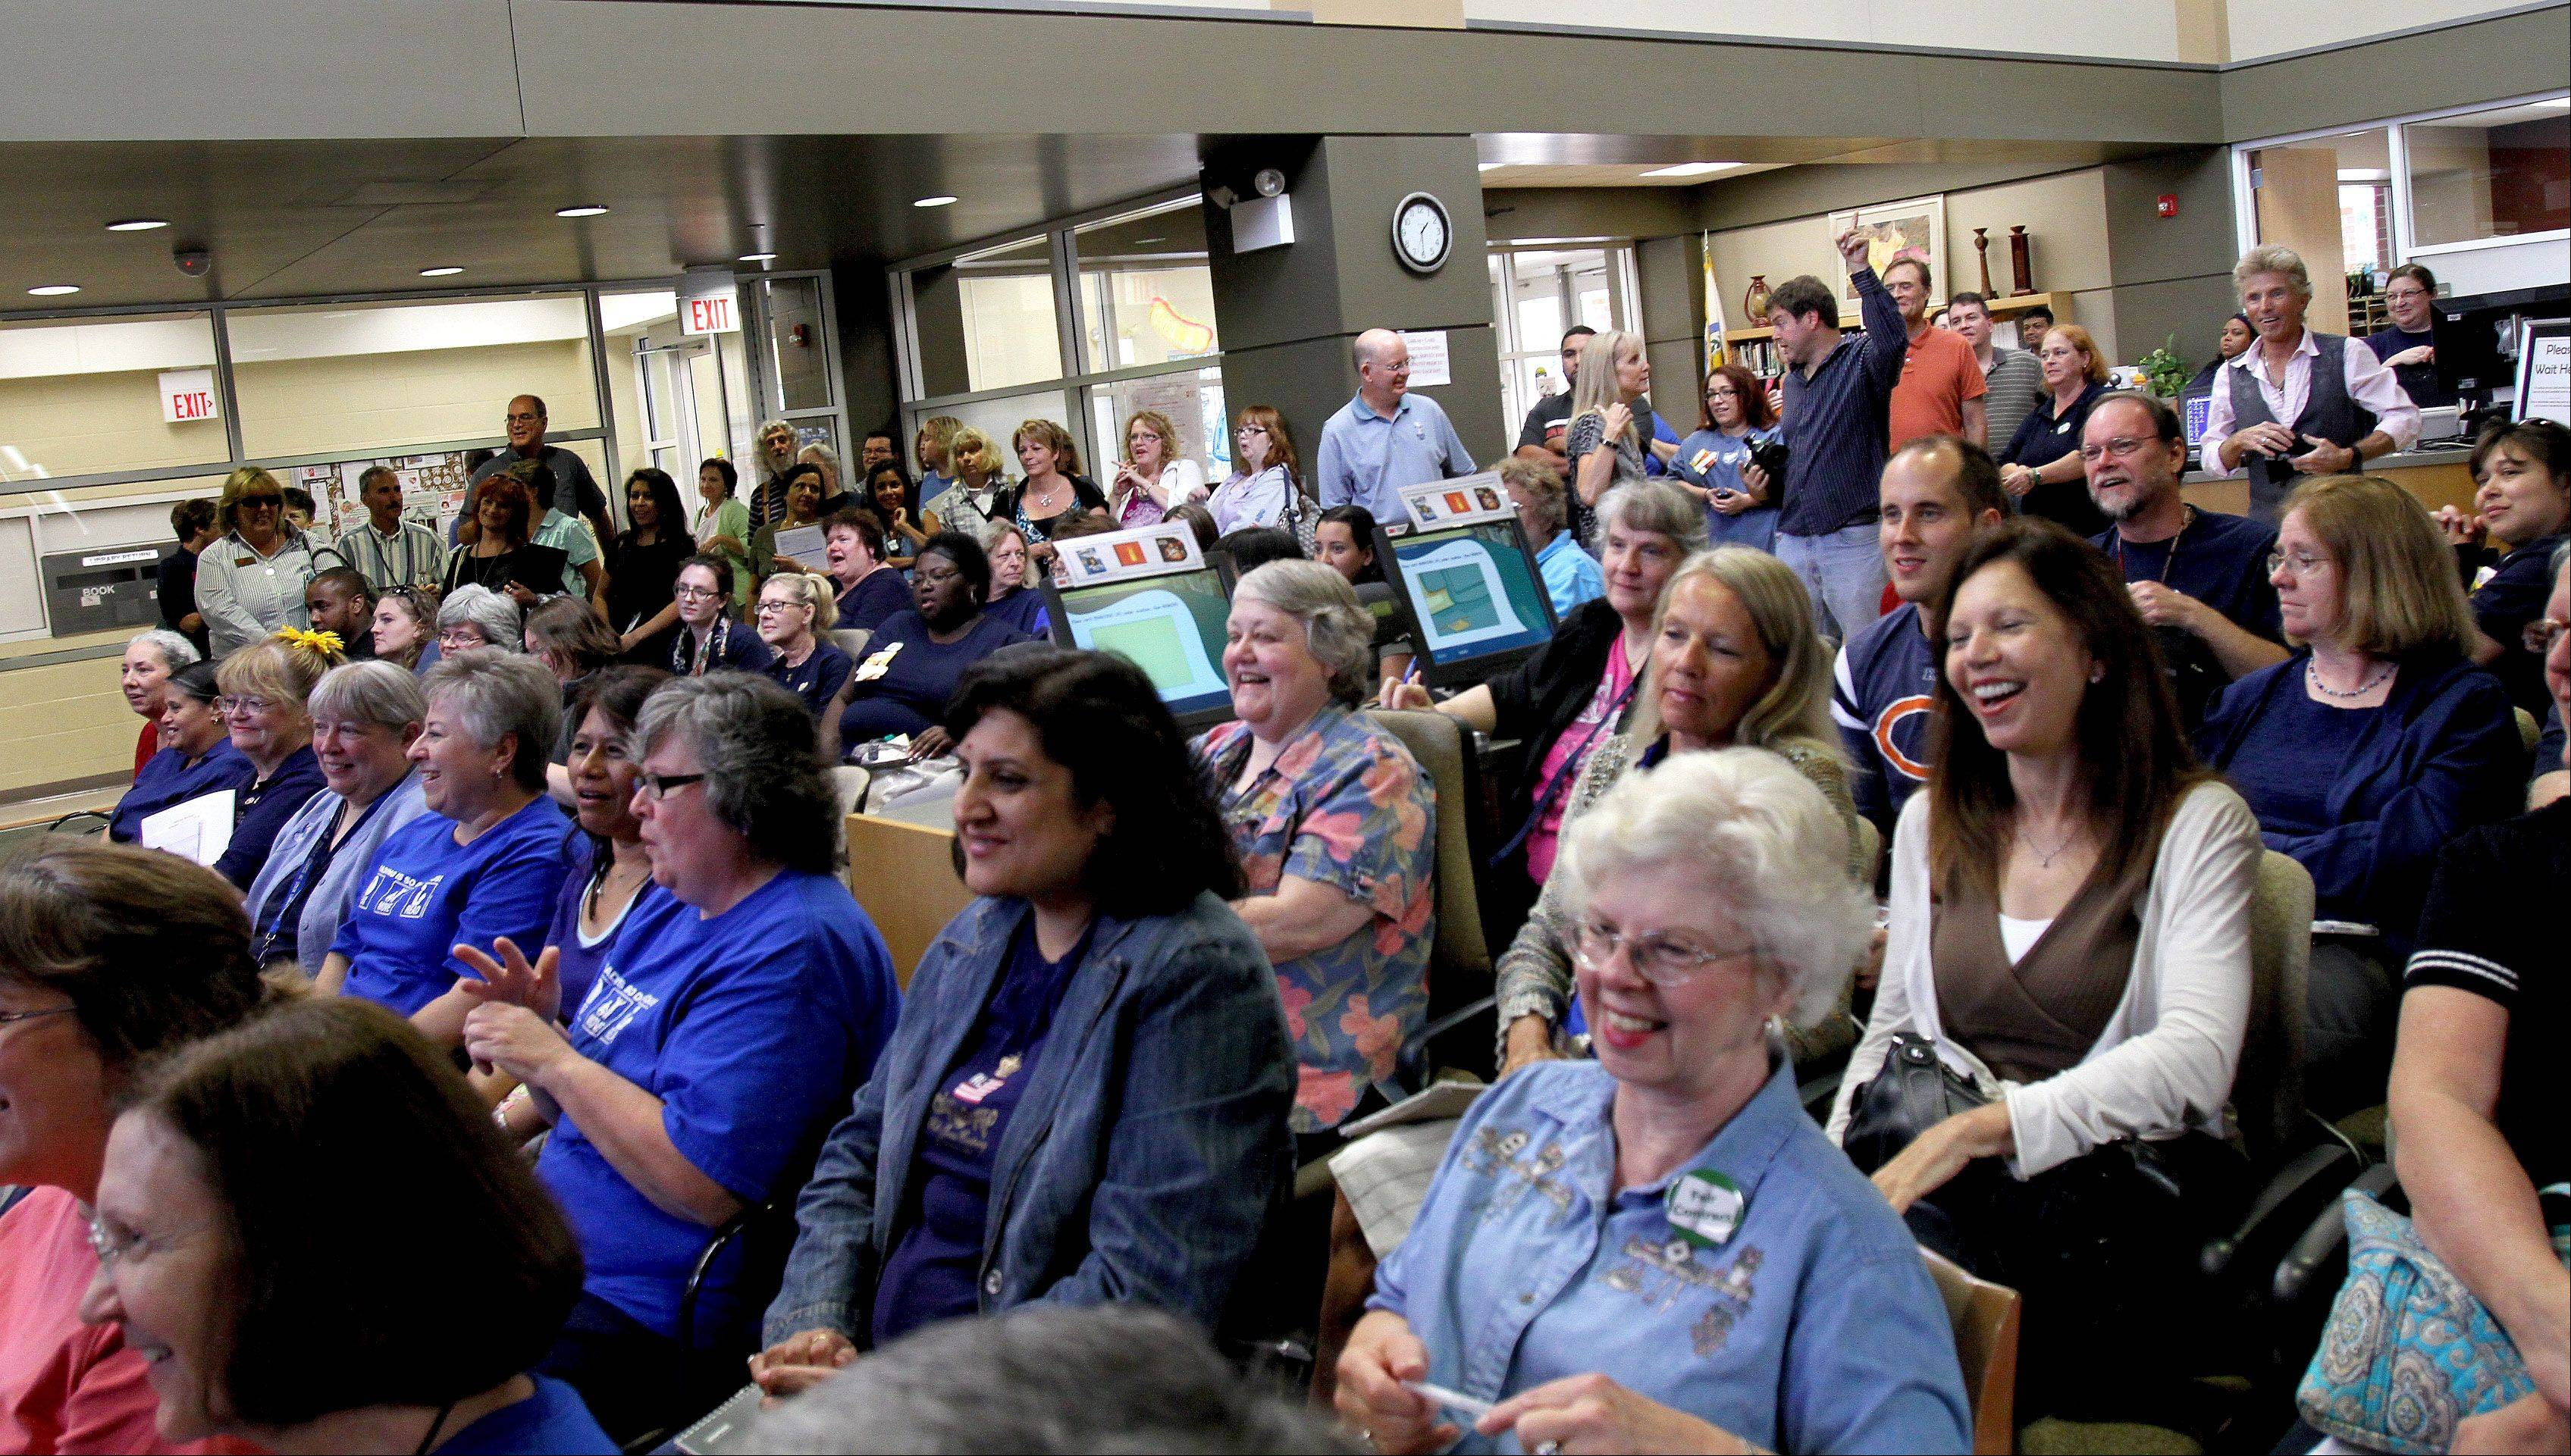 Library employees enjoy a mini-concert by musician Jim Peterik during his visit Friday to the Eola Road Branch Library in Aurora.